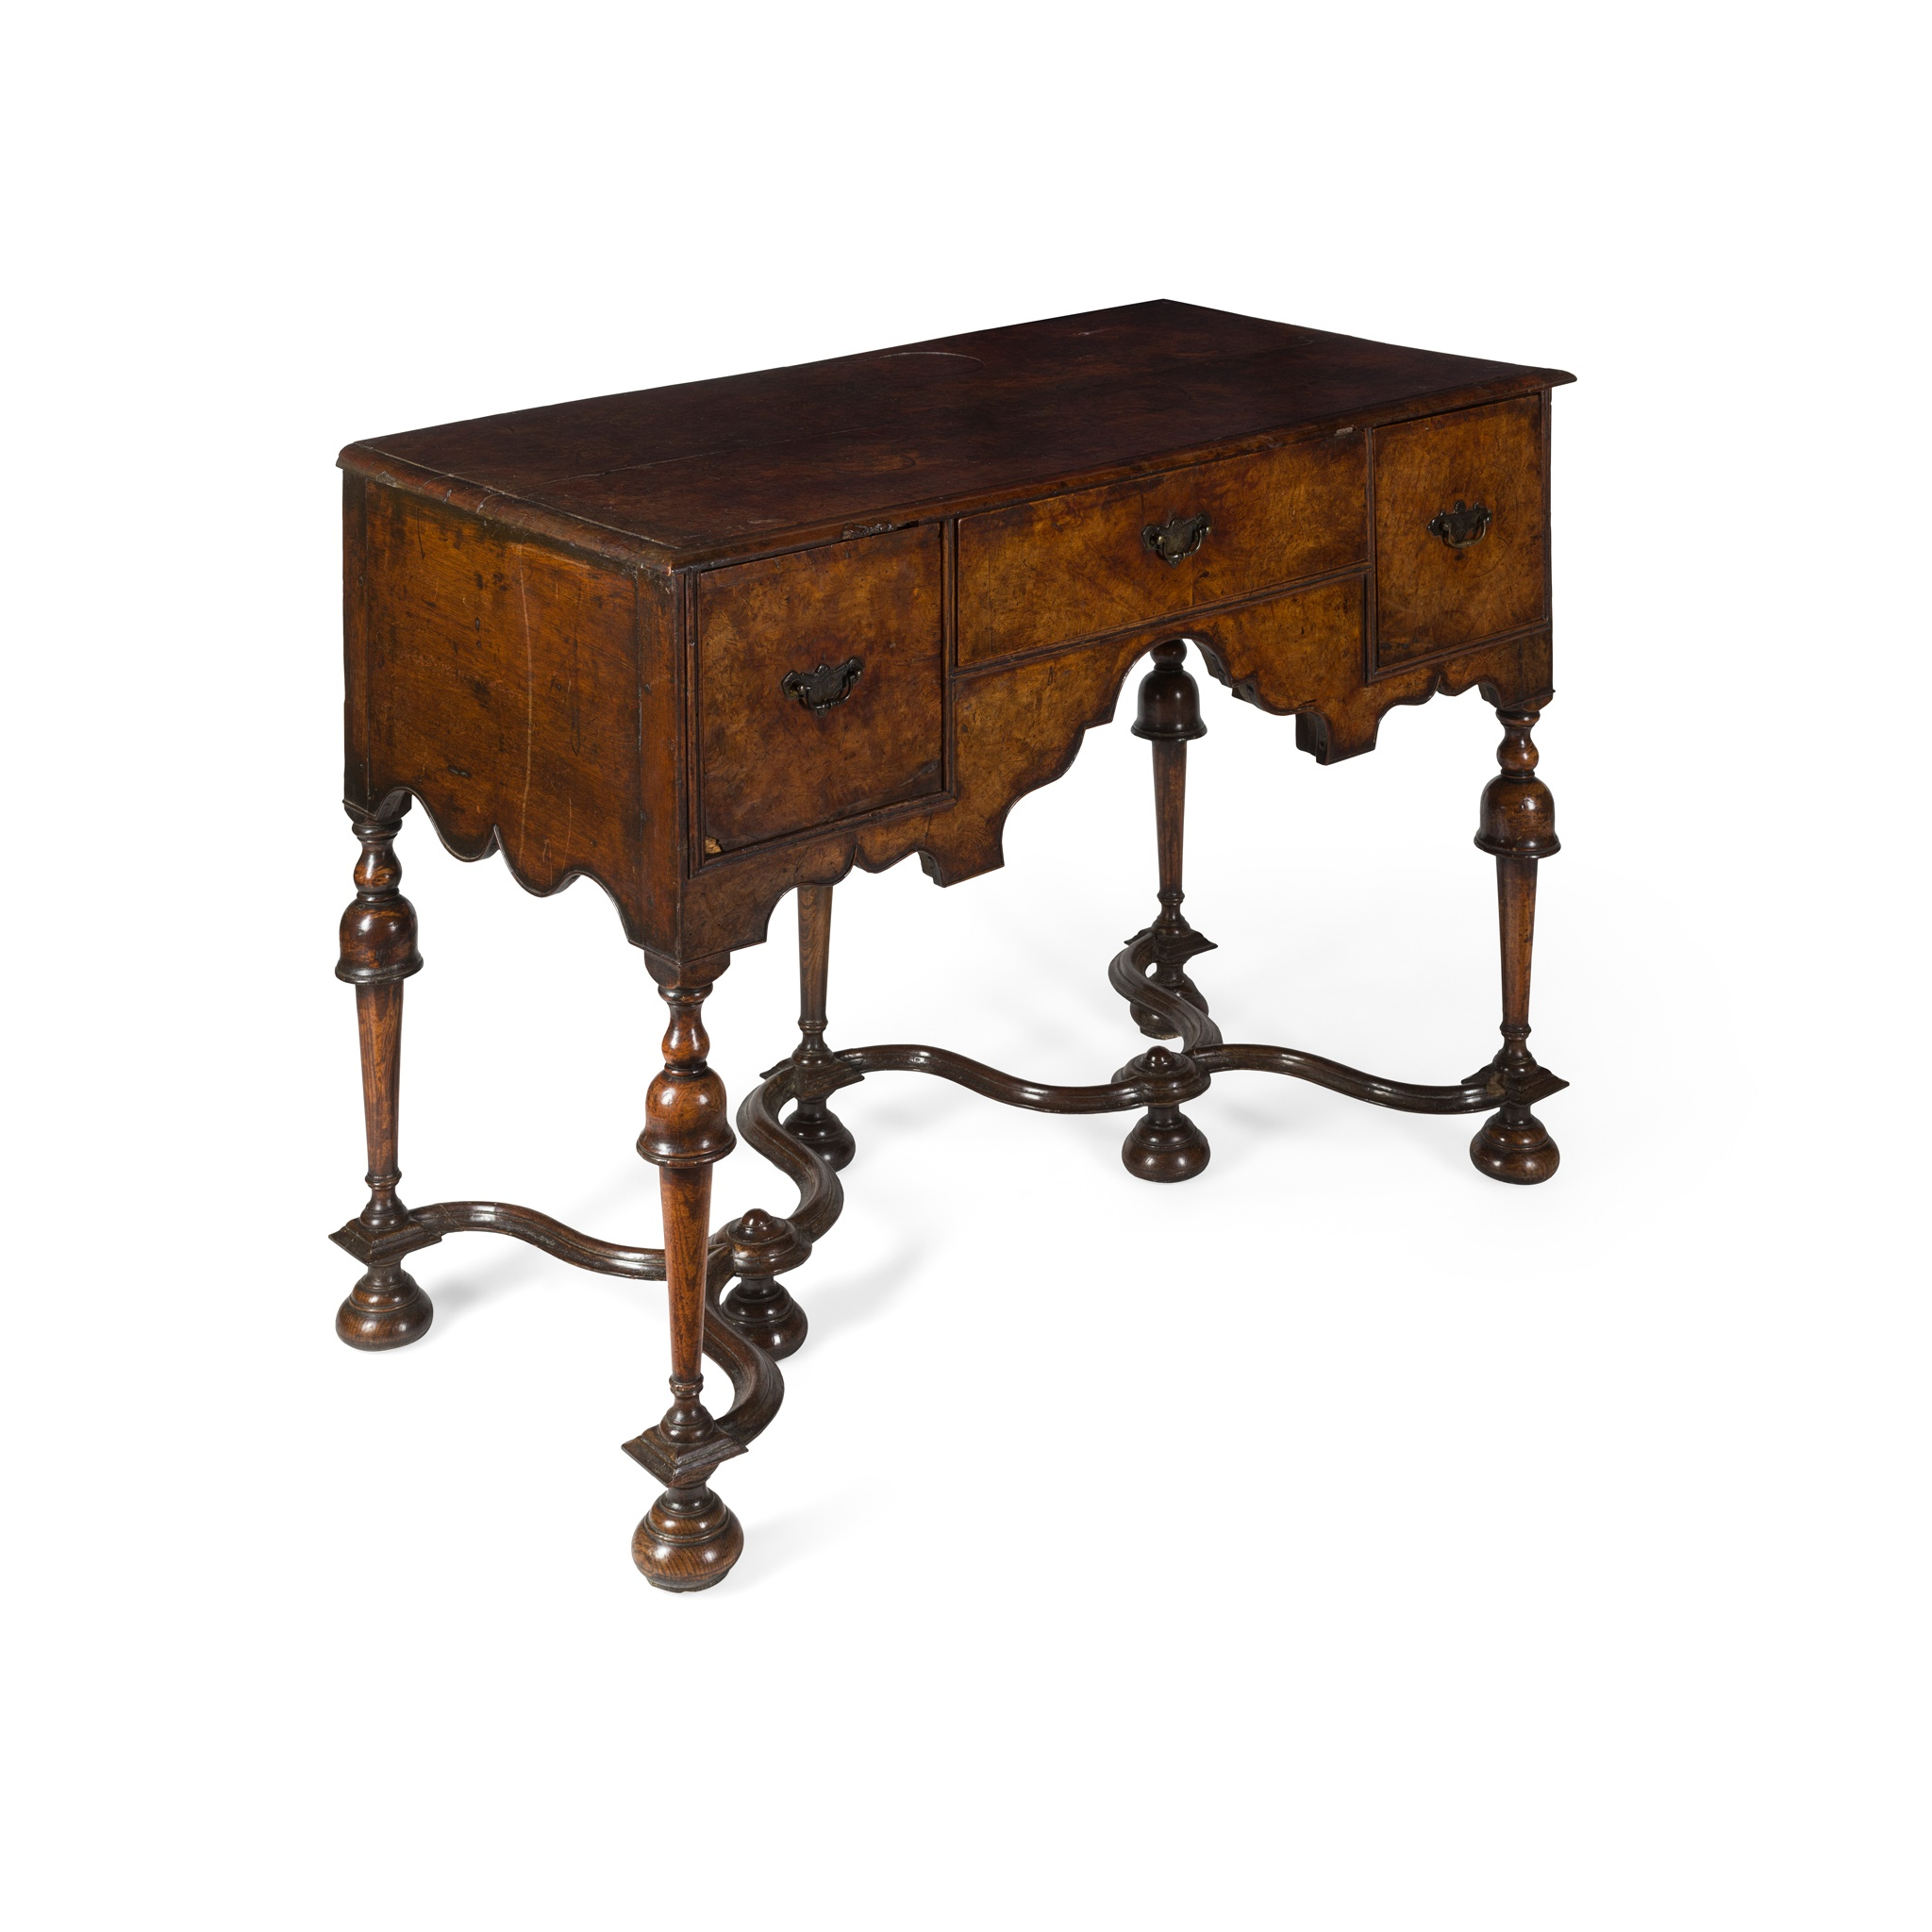 QUEEN ANNE WALNUT LOWBOY EARLY 18TH CENTURY